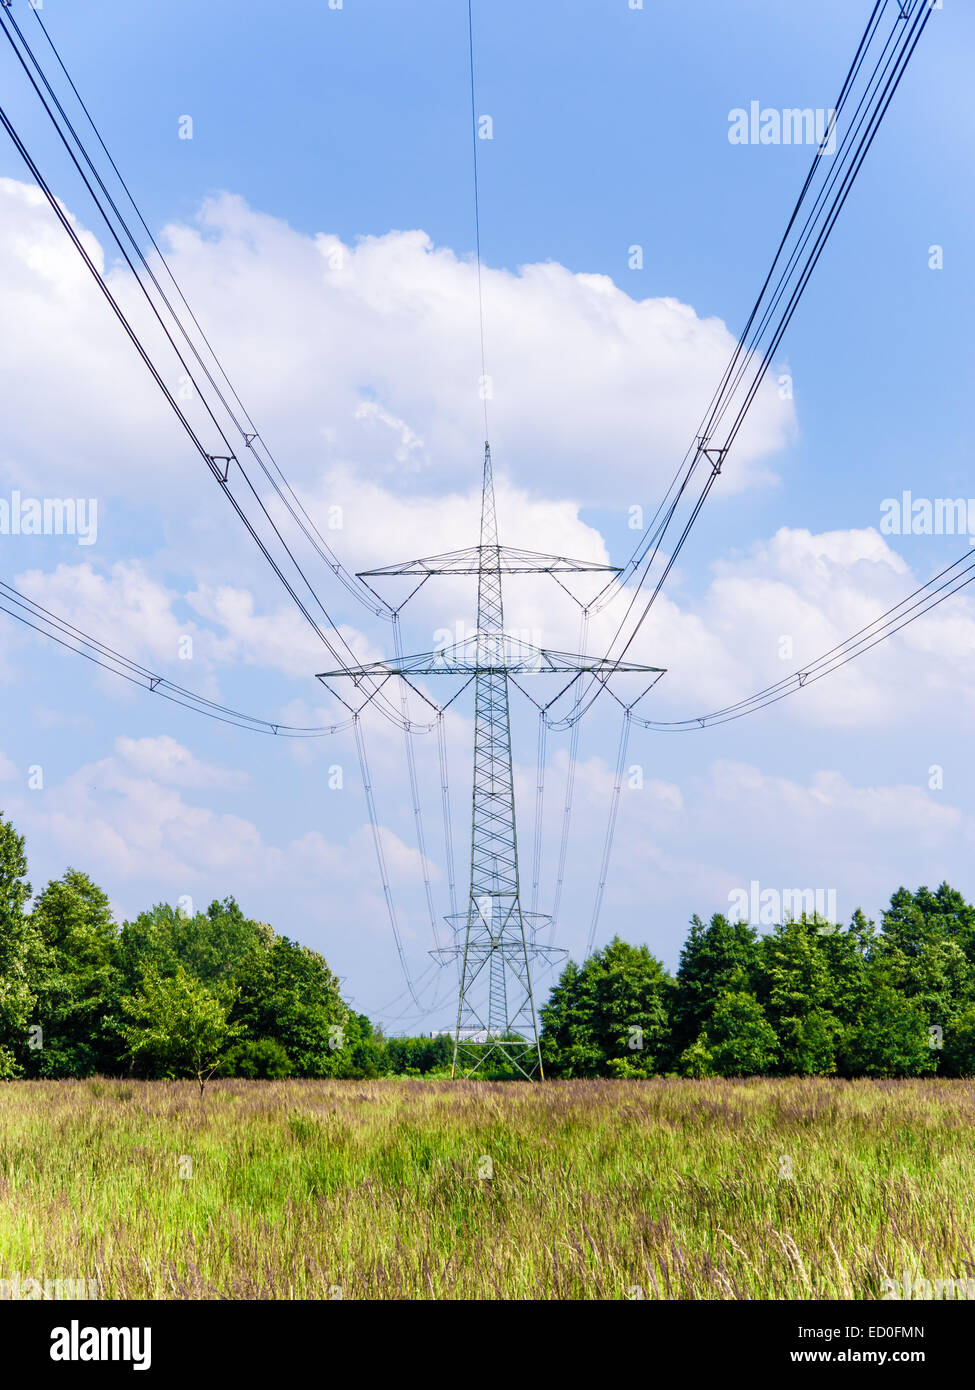 electrical tower in landscape with grasses and trees Stock Photo